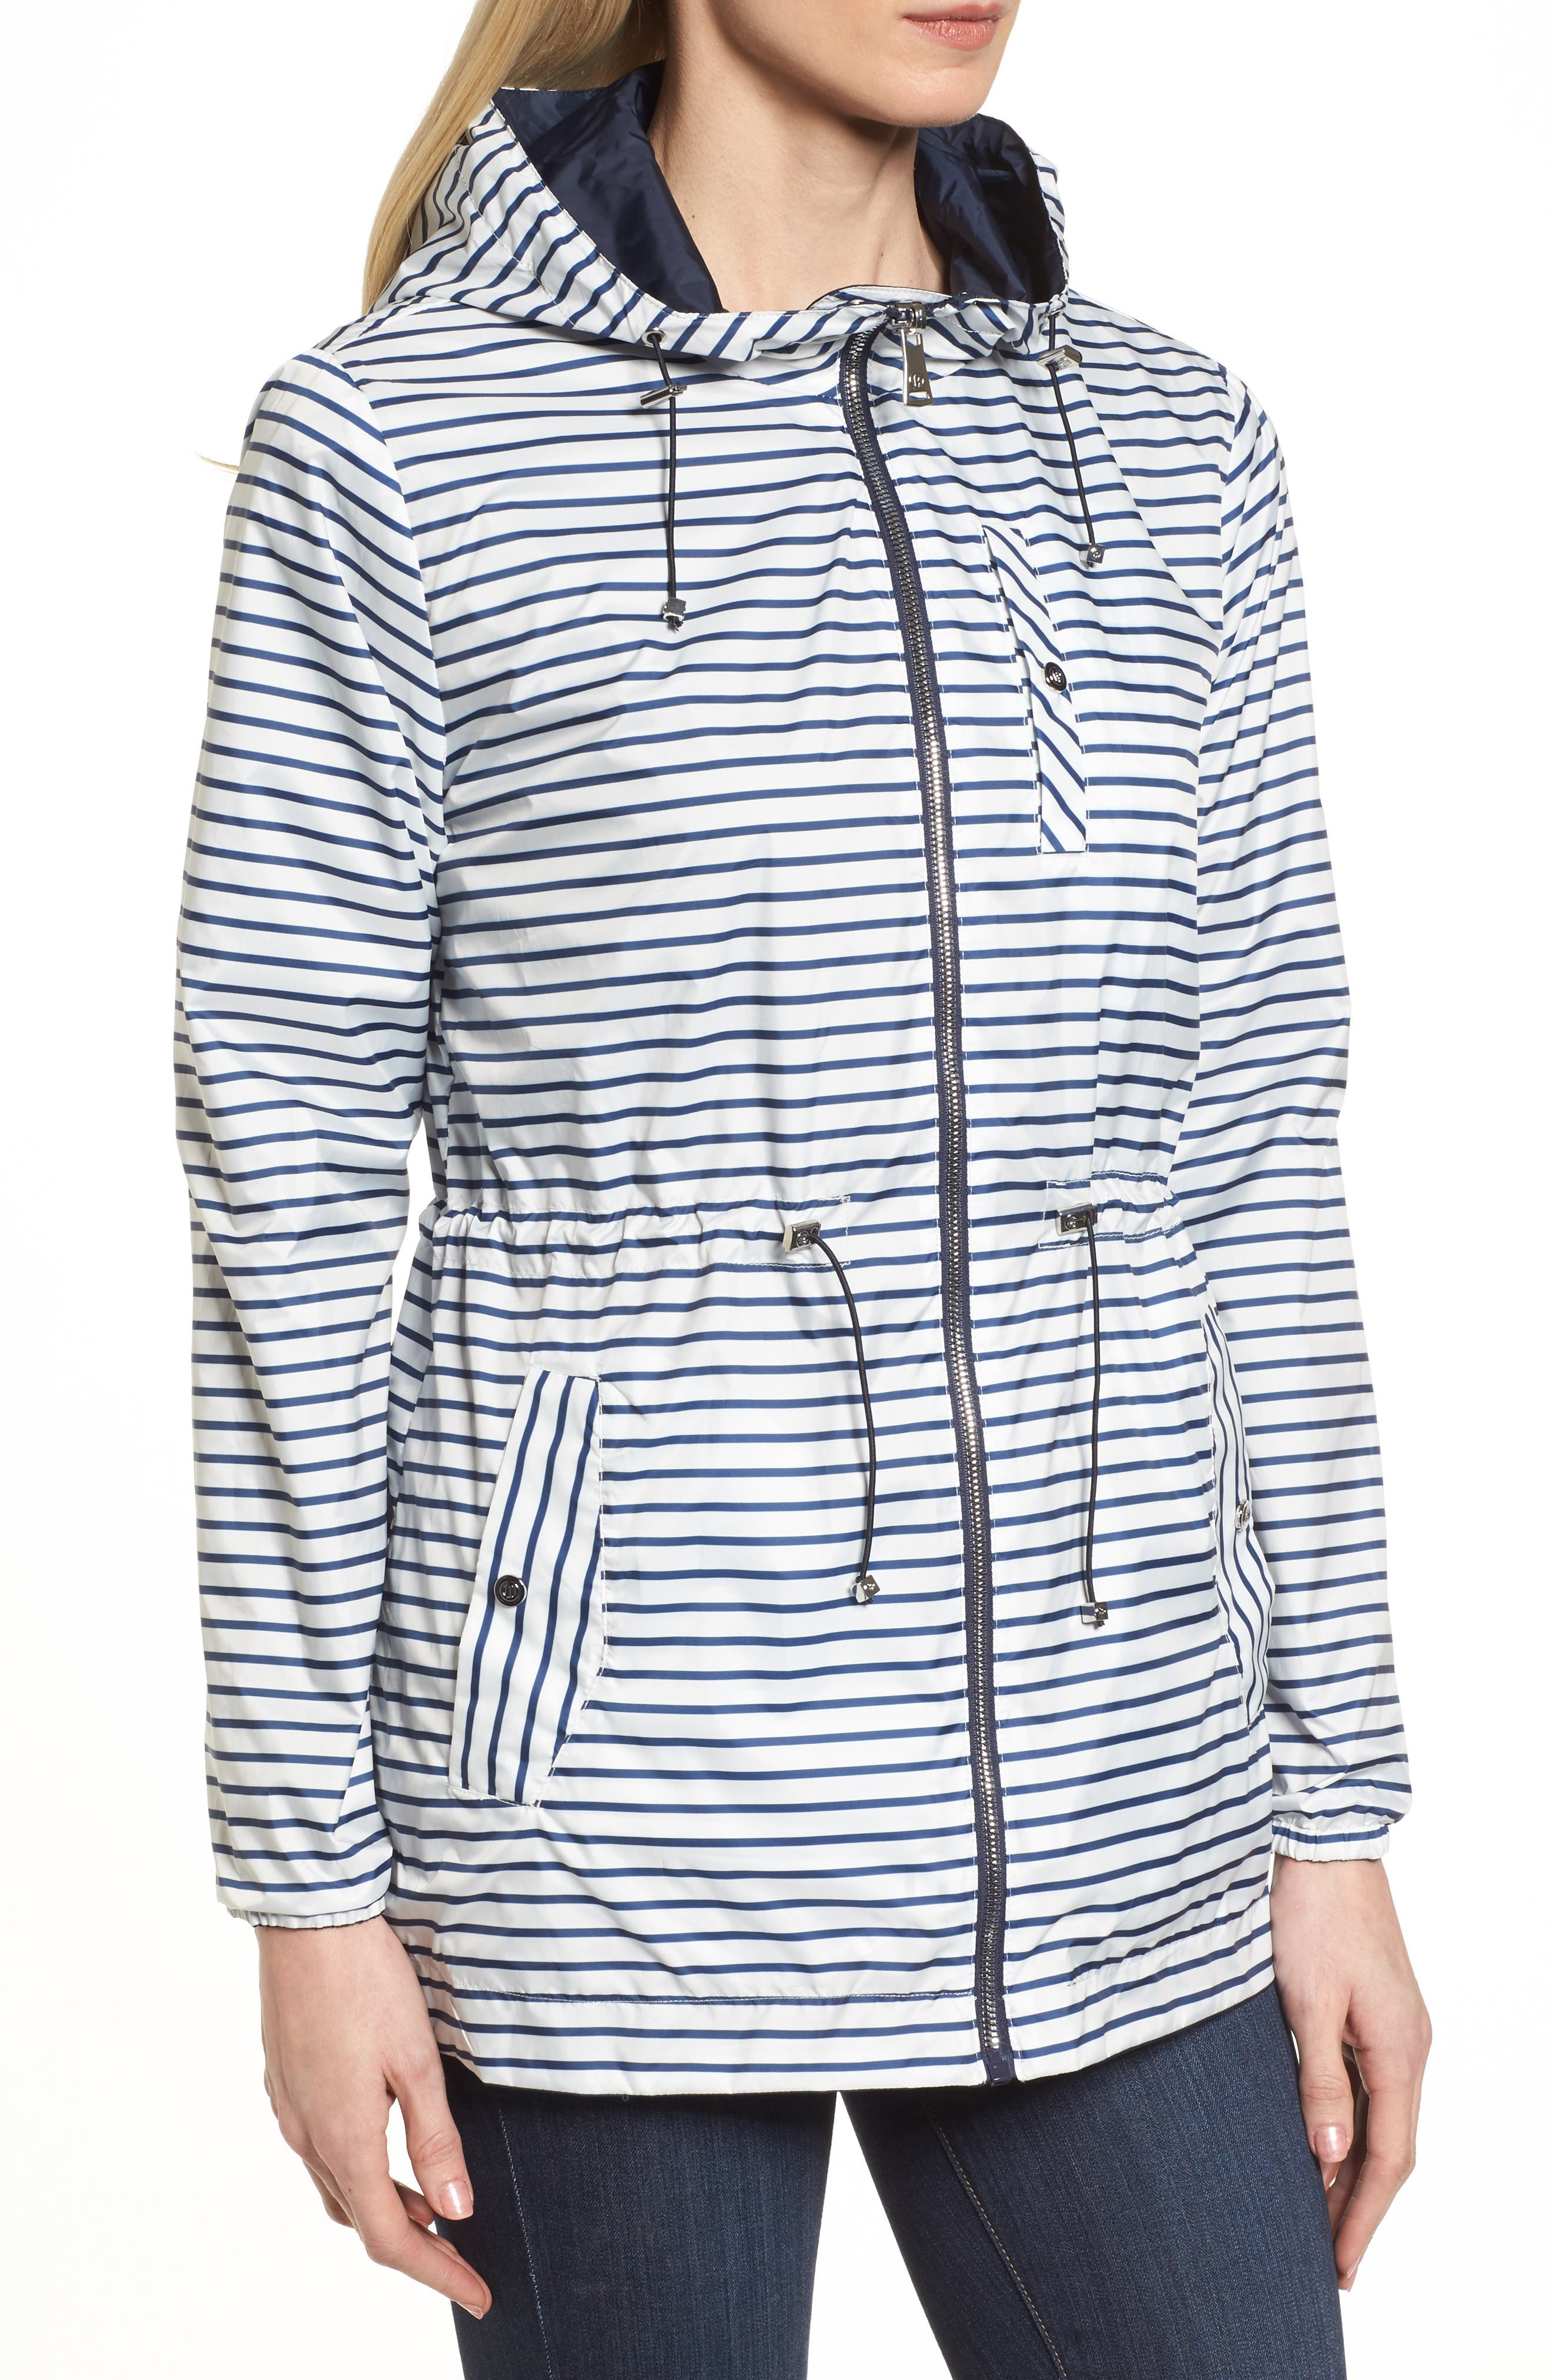 Solid to Stripe Reversible Jacket,                             Alternate thumbnail 2, color,                             Navy